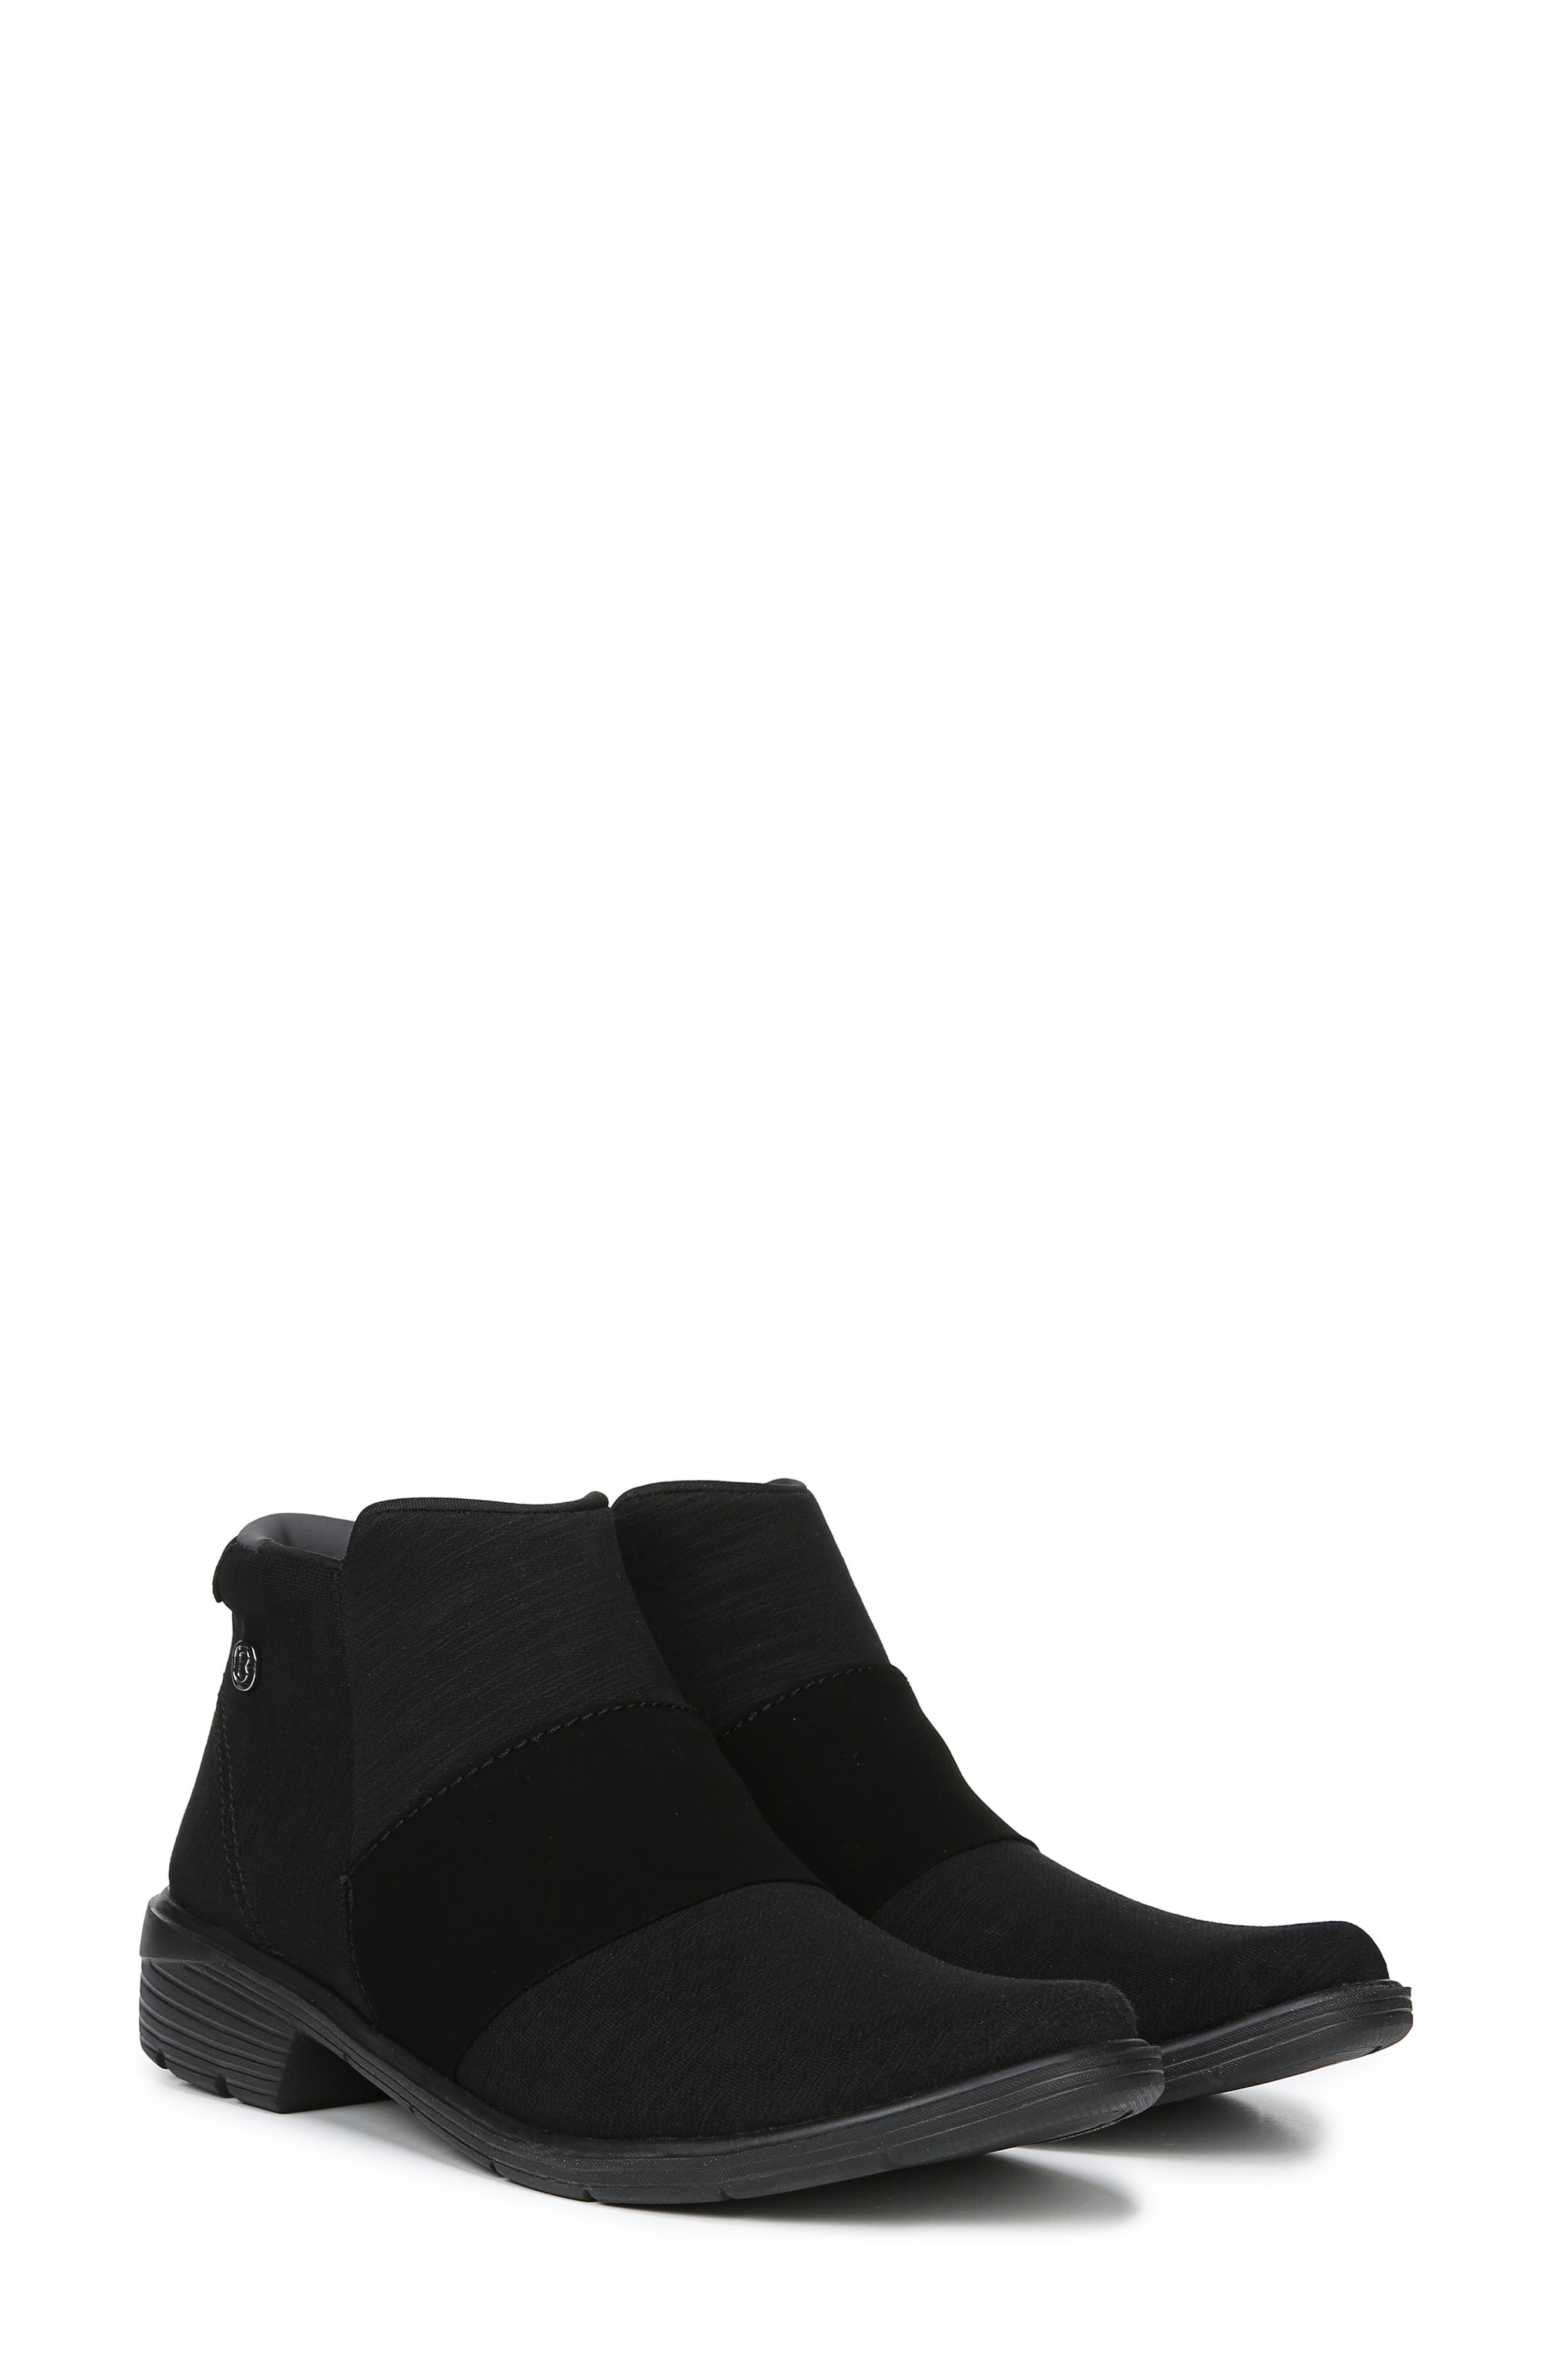 Billie Bootie,                             Alternate thumbnail 9, color,                             BLACK THICK HEATHER FABRIC